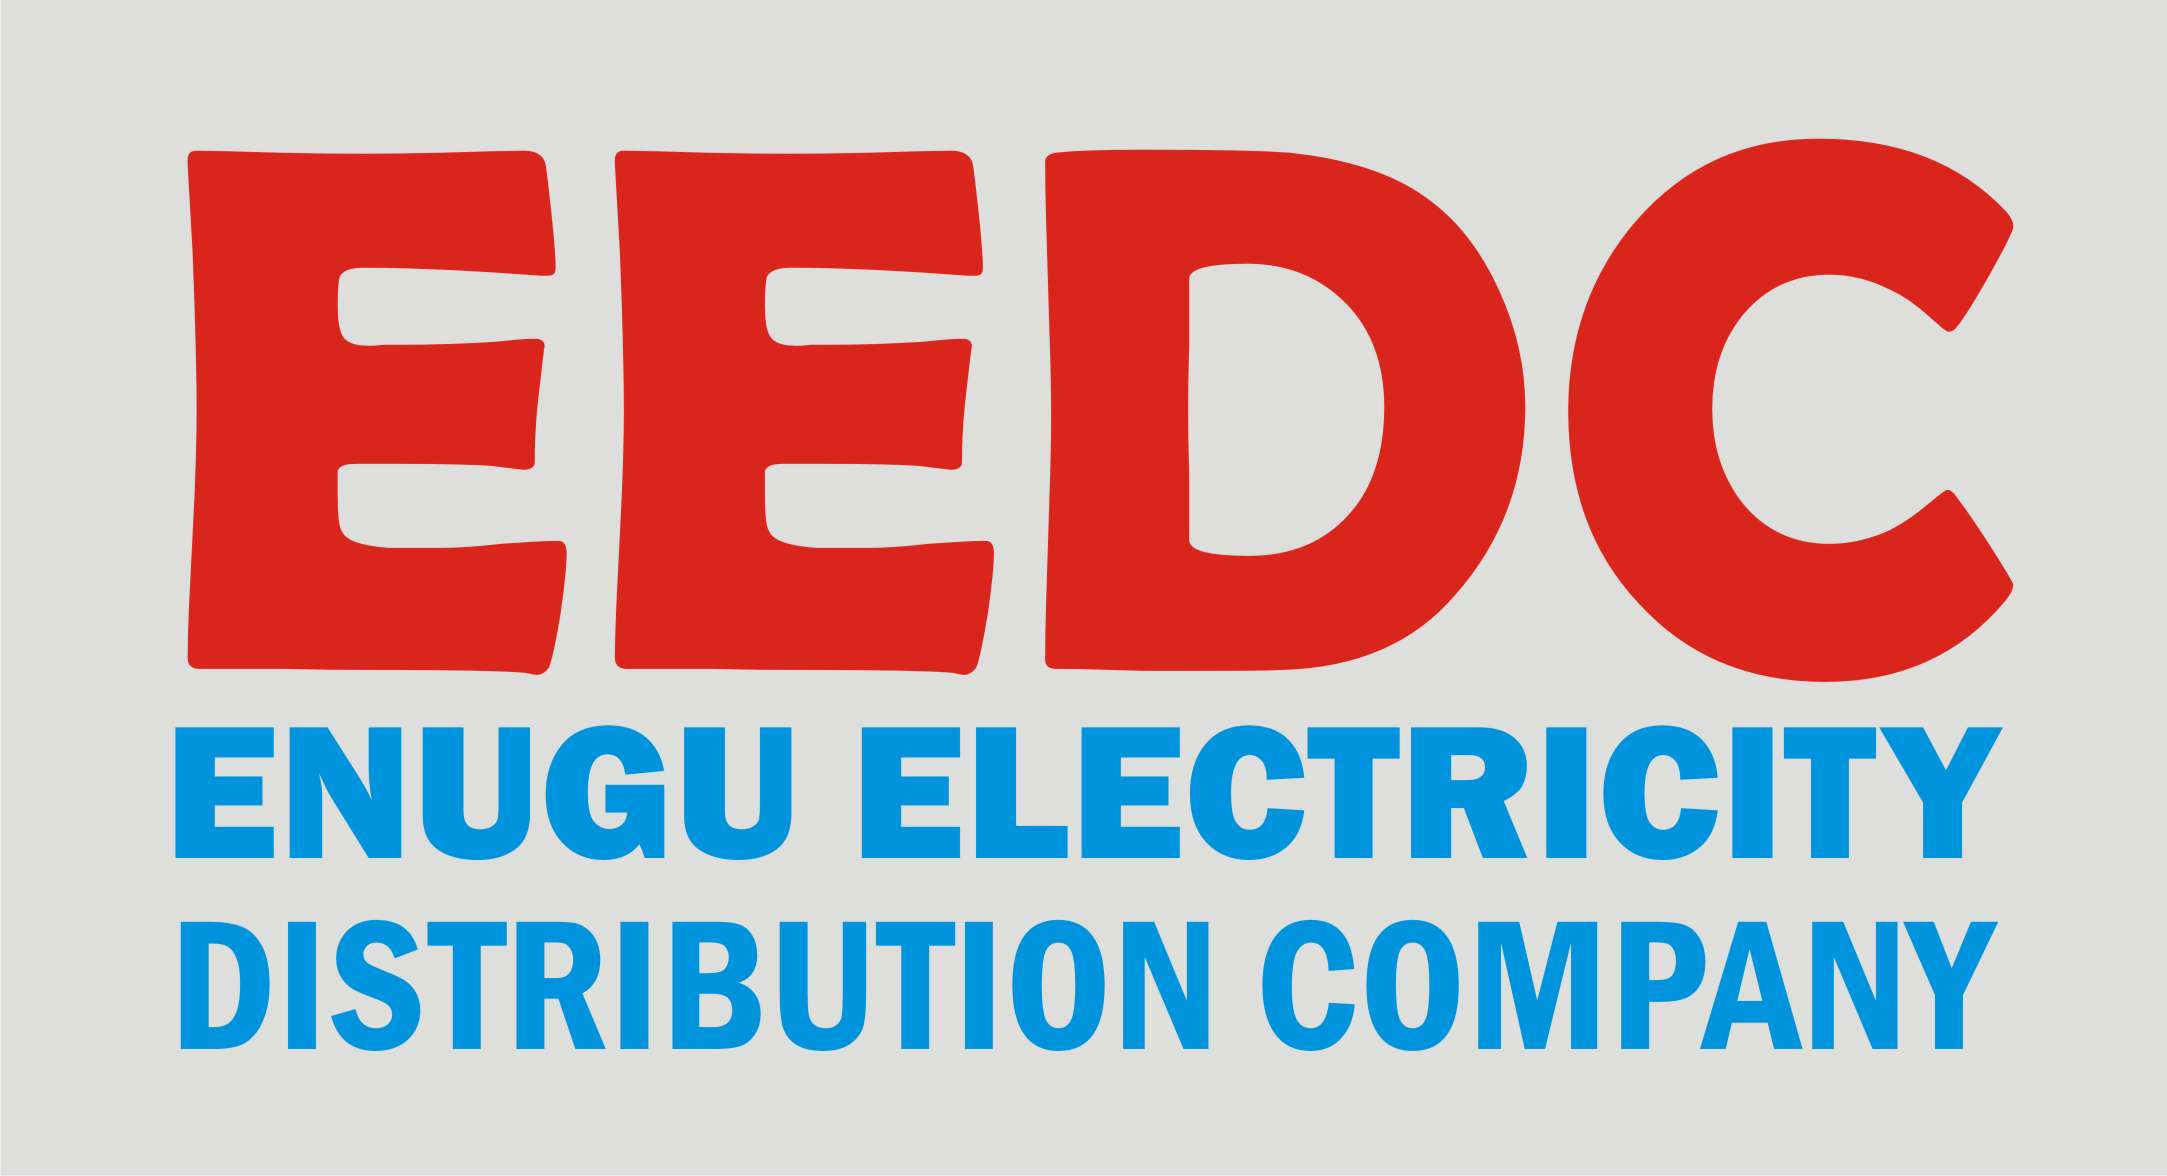 #EndSARS: EEDC raises alarm over disruption of its operations in southeast zone